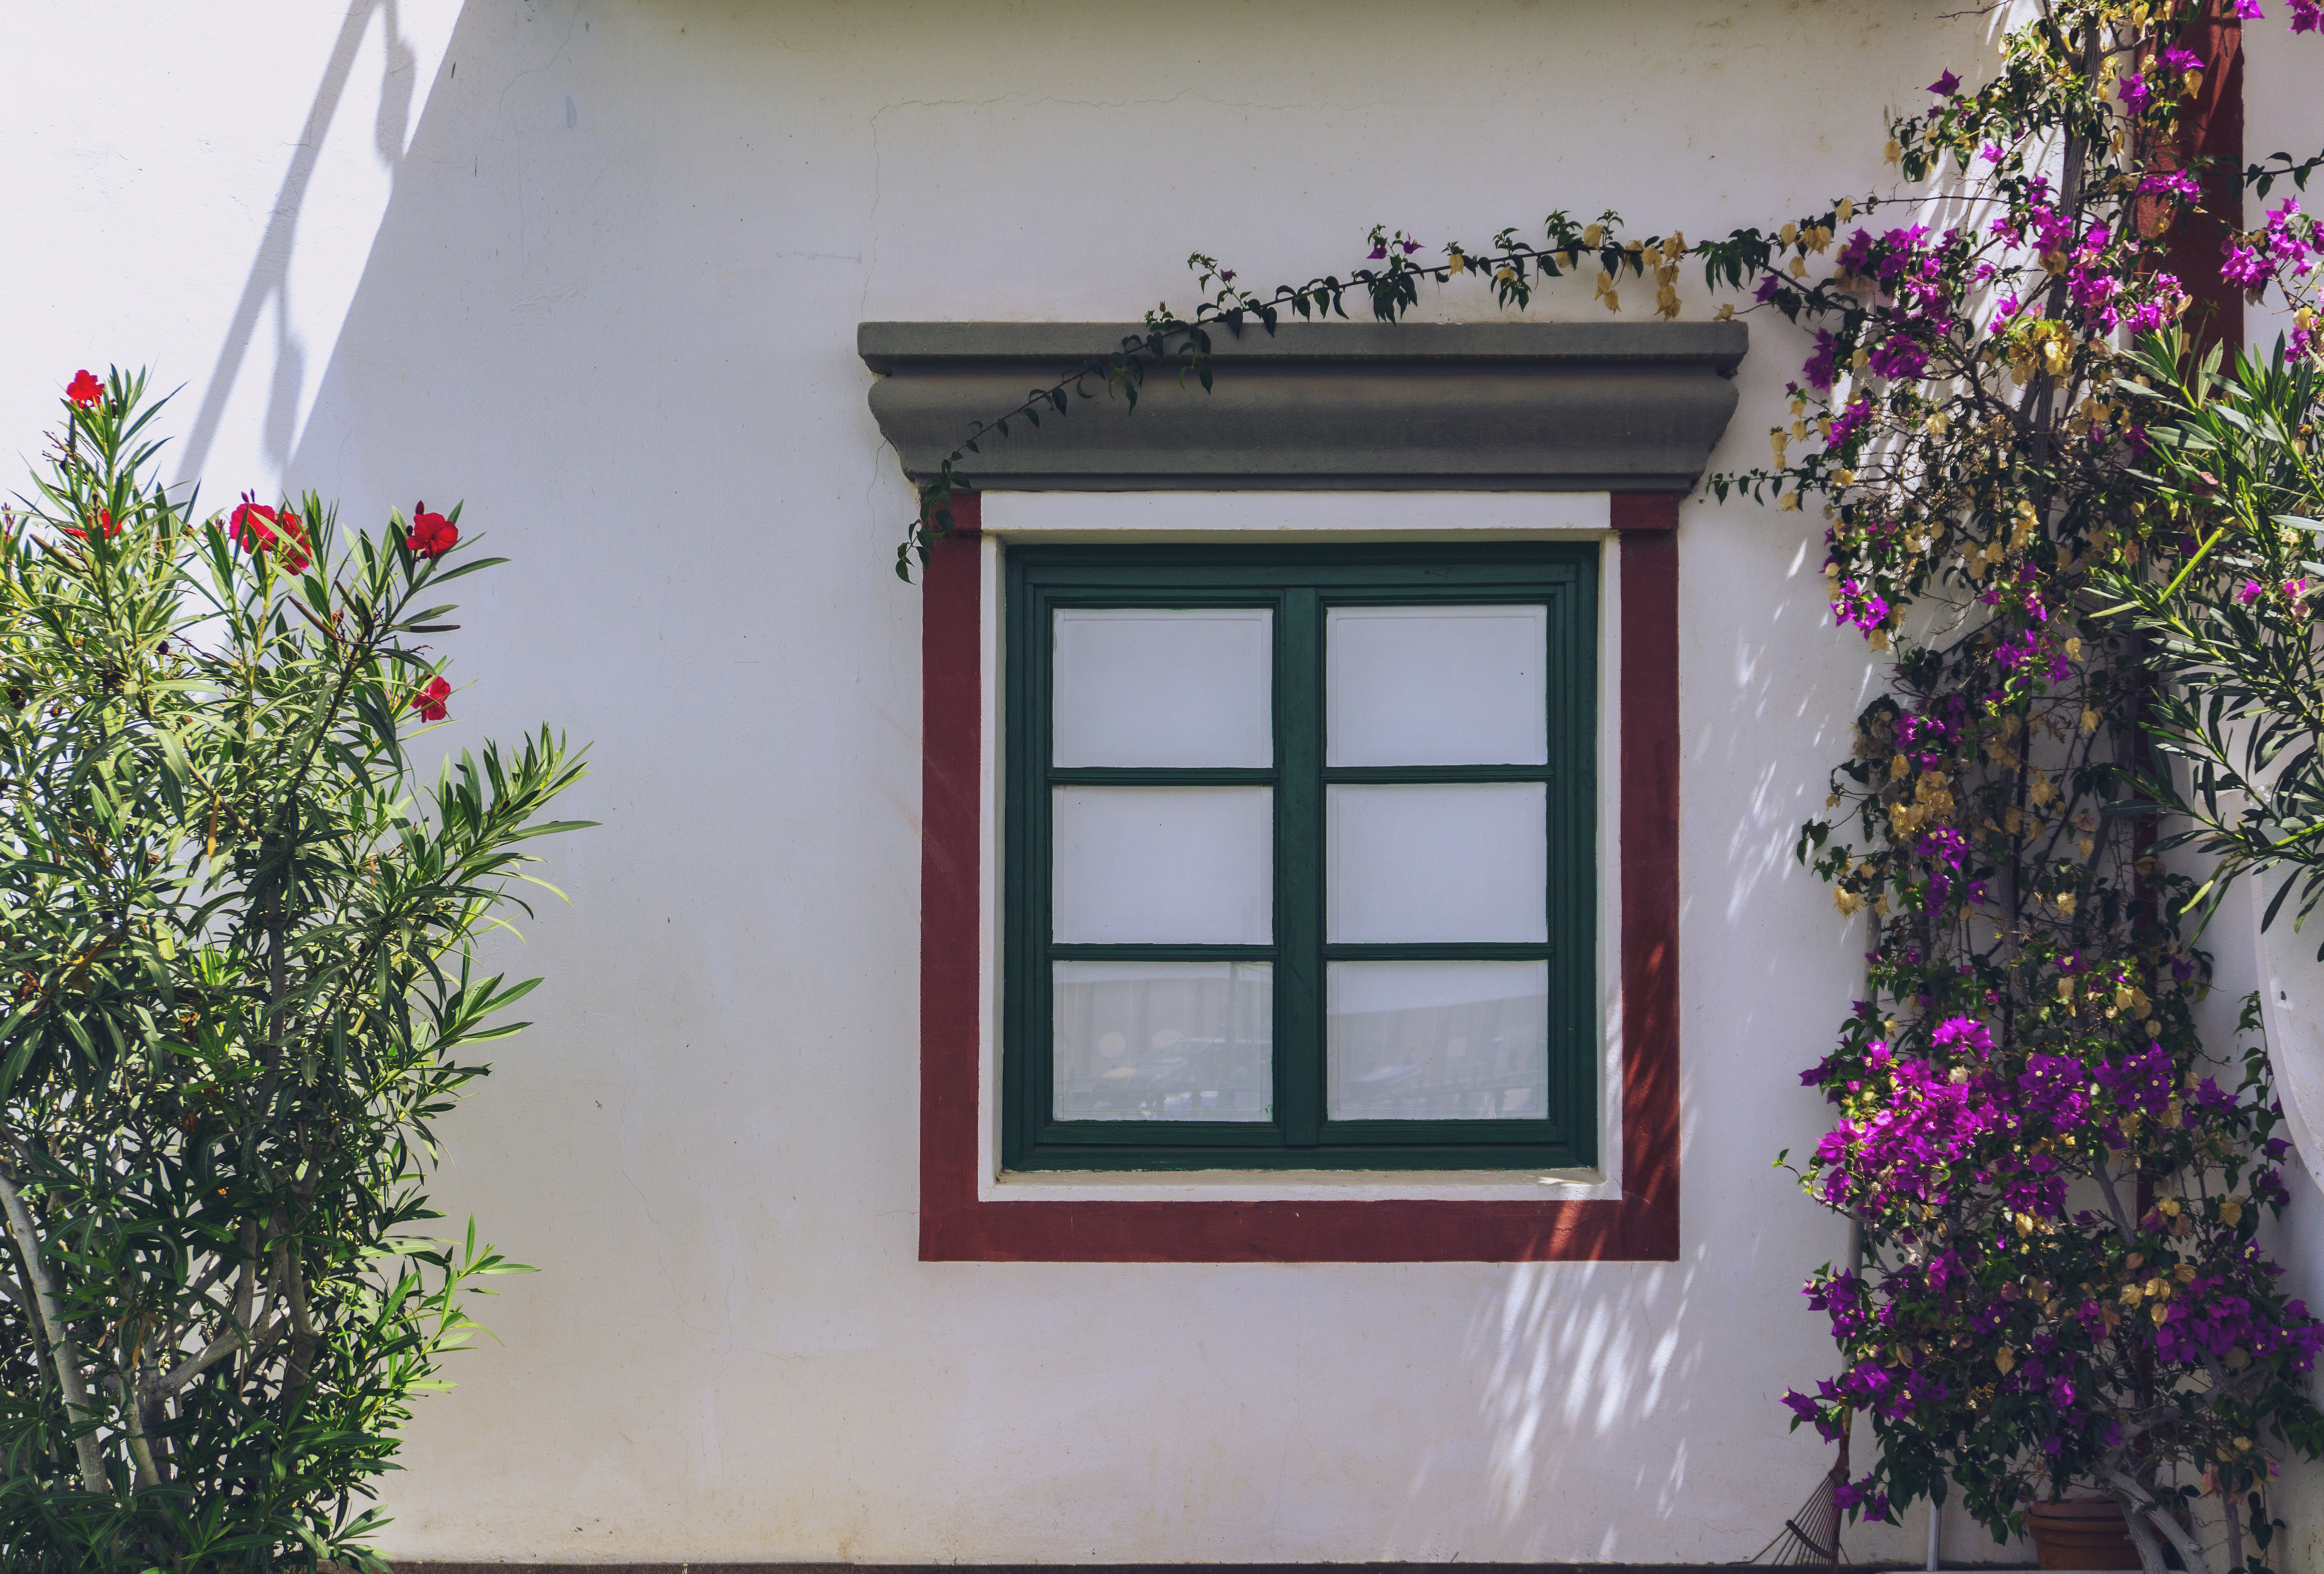 window with green frame beside crawling plants